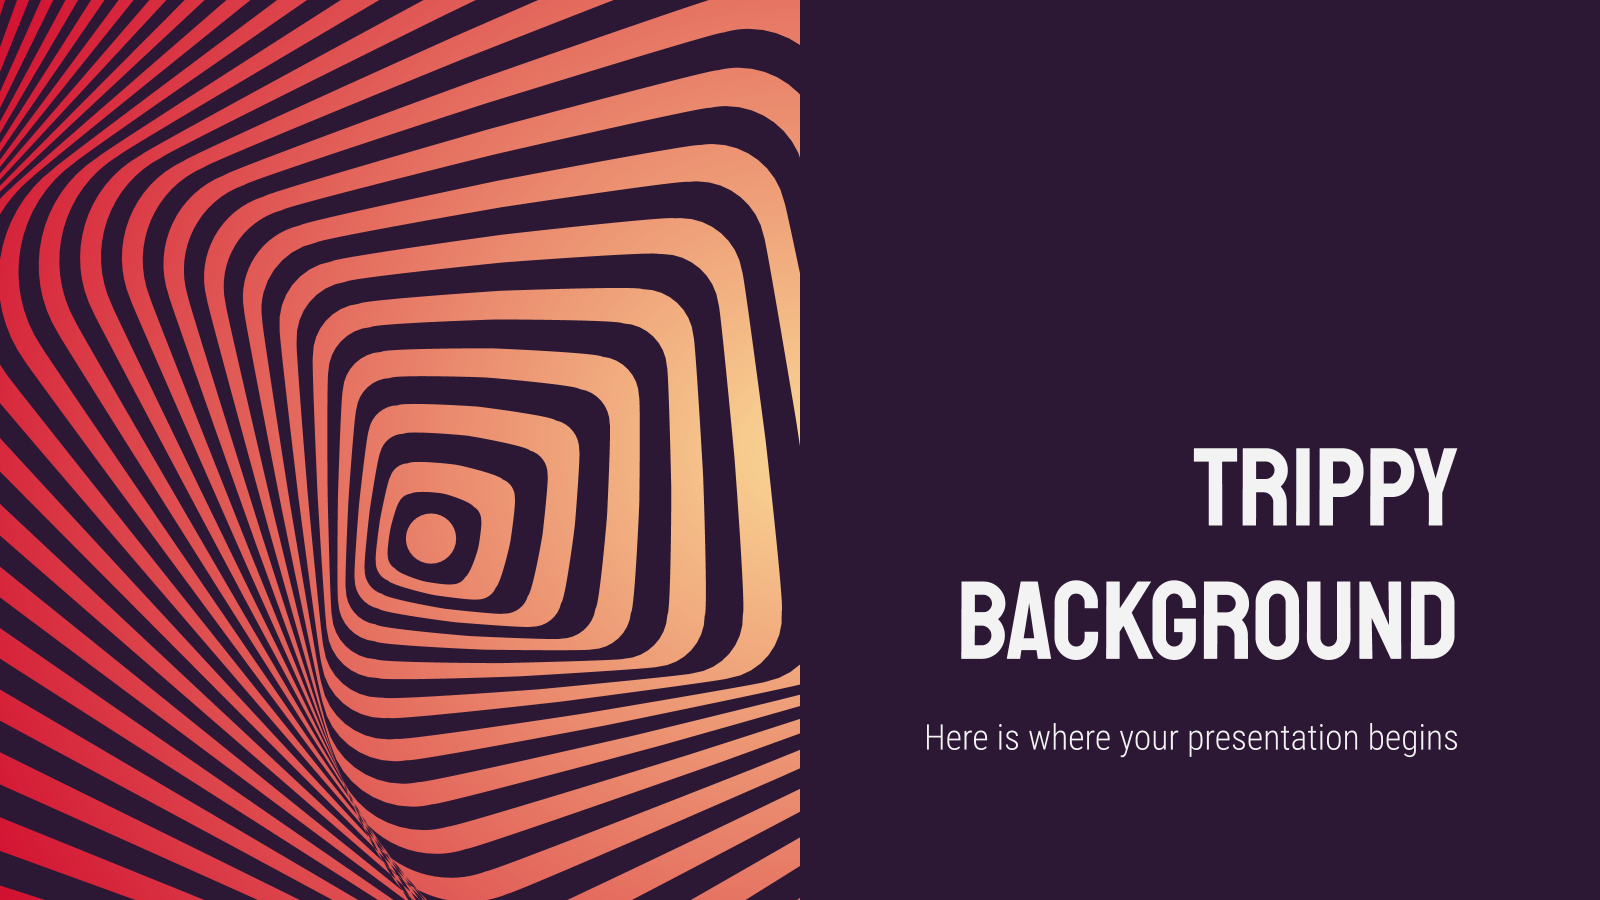 Trippy Background presentation template